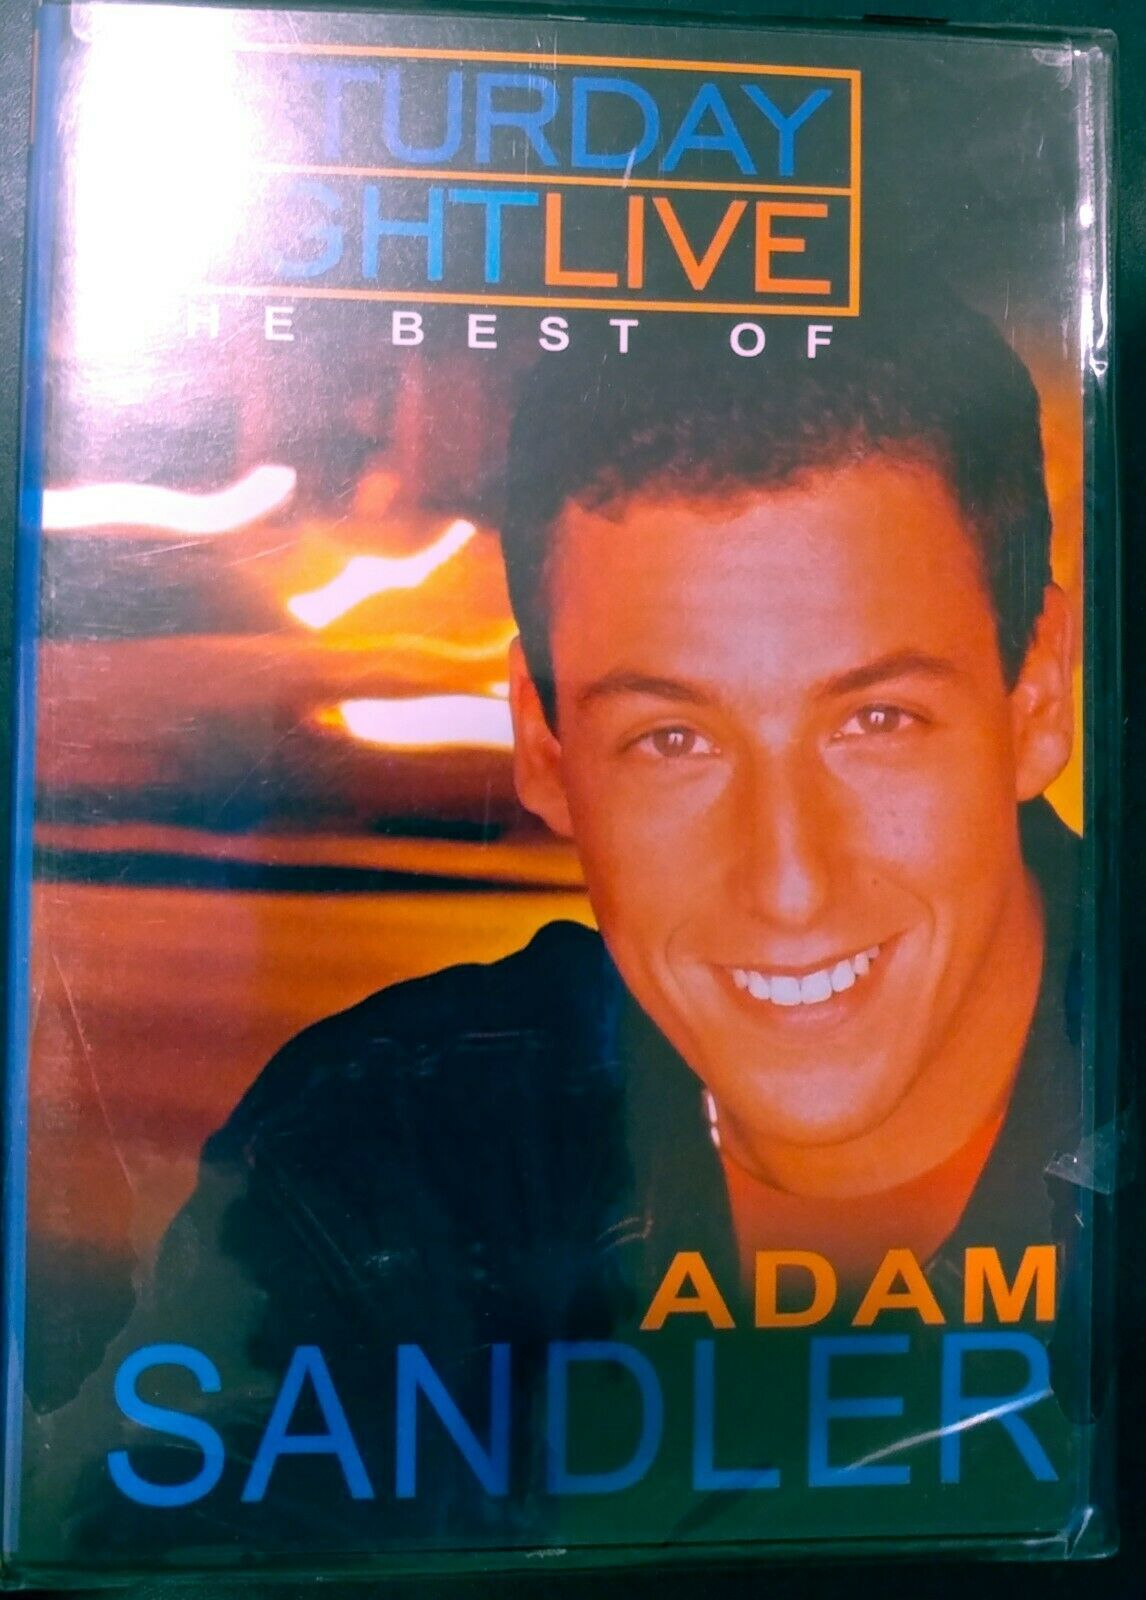 Saturday Night Live Best of Adam Sandler (DVD, 2003